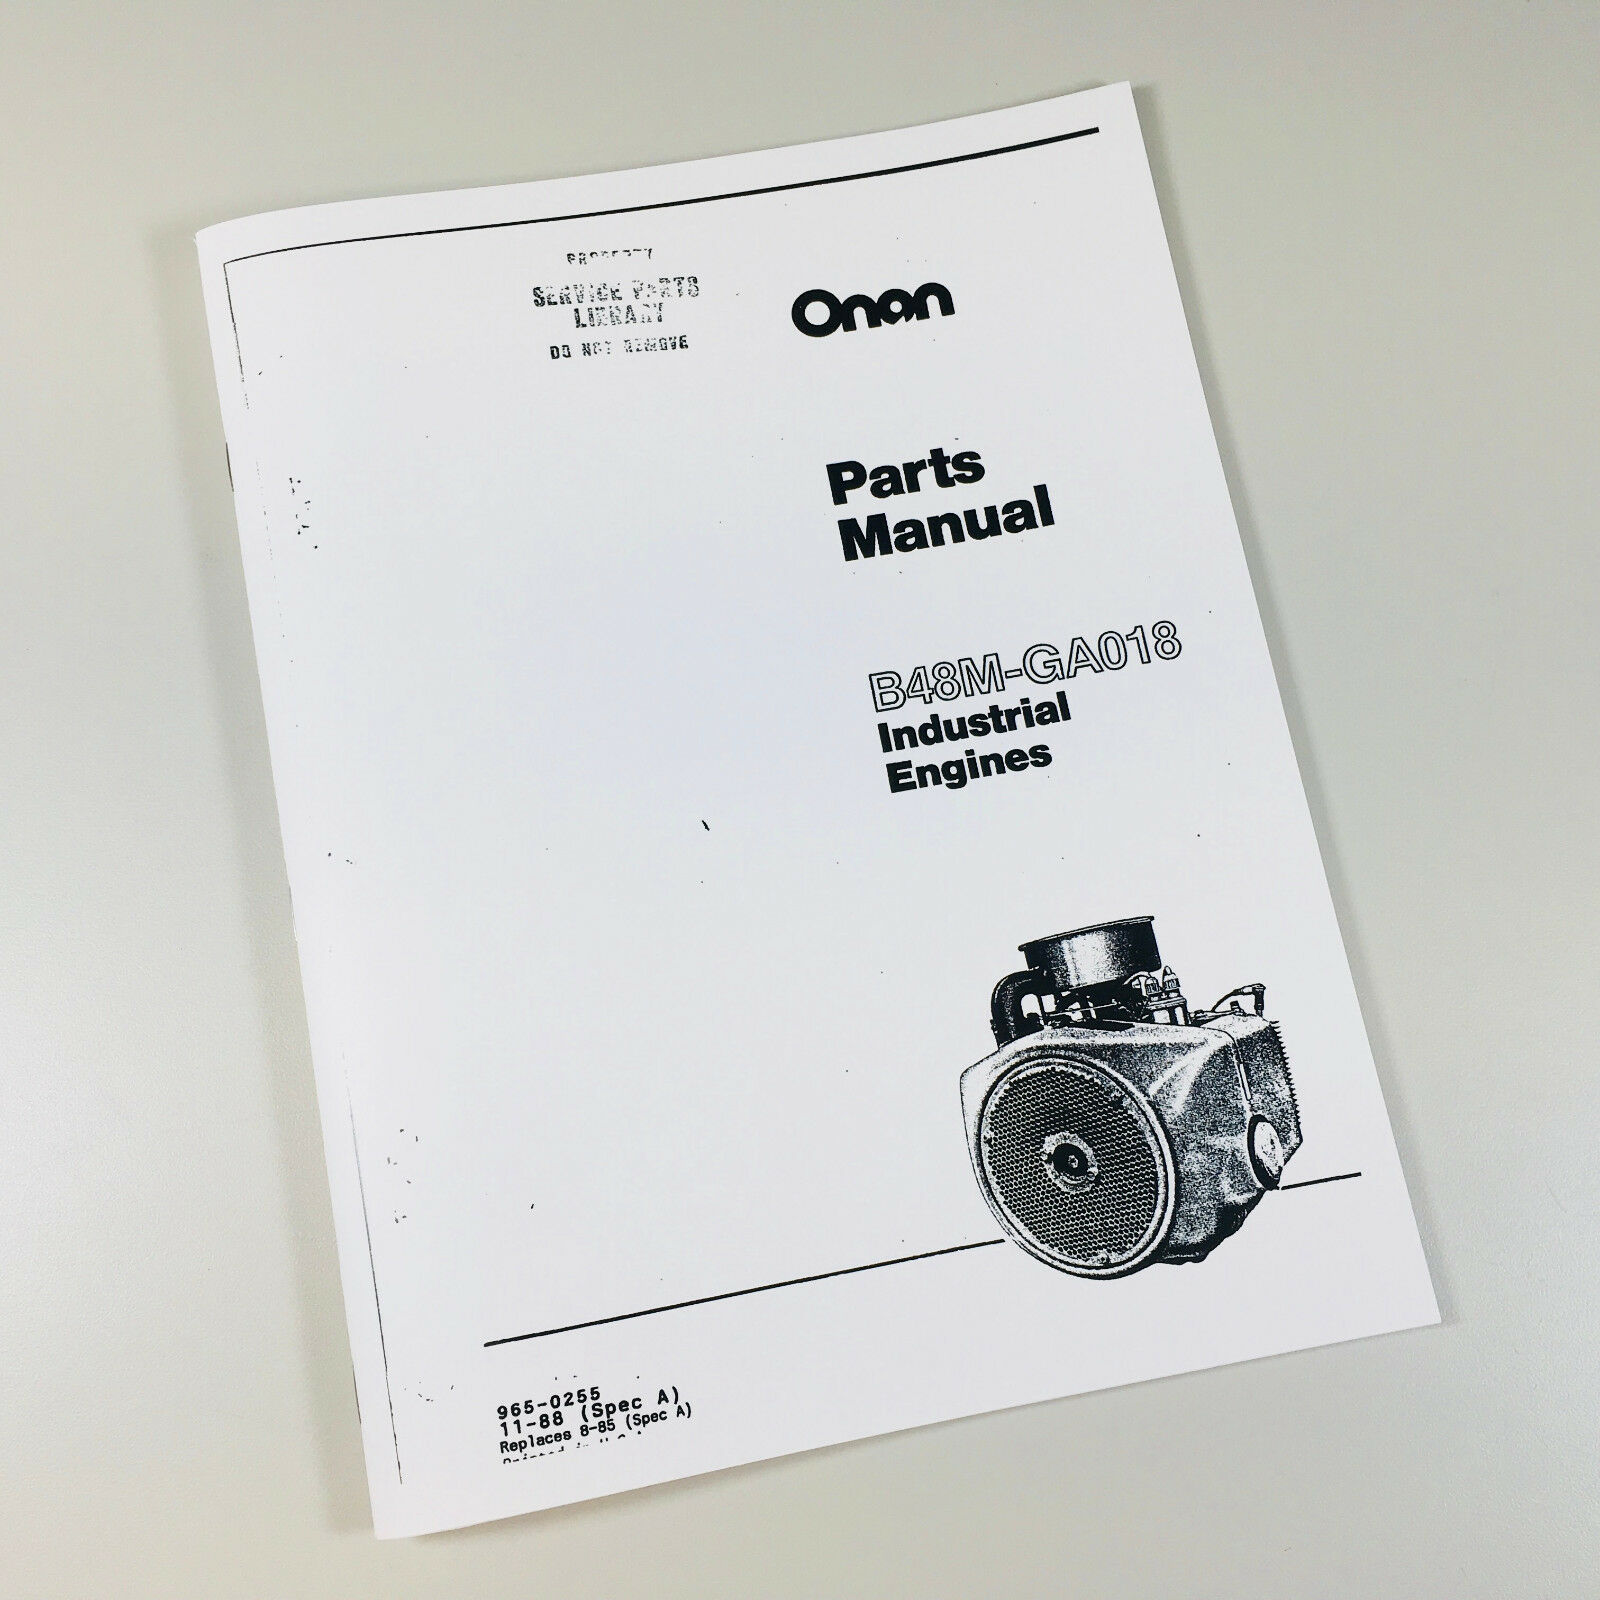 Details about ONAN B48M GA018 INDUSTRIAL ENGINES PARTS MANUAL MAINTENANCE  CATALOG SPEC A